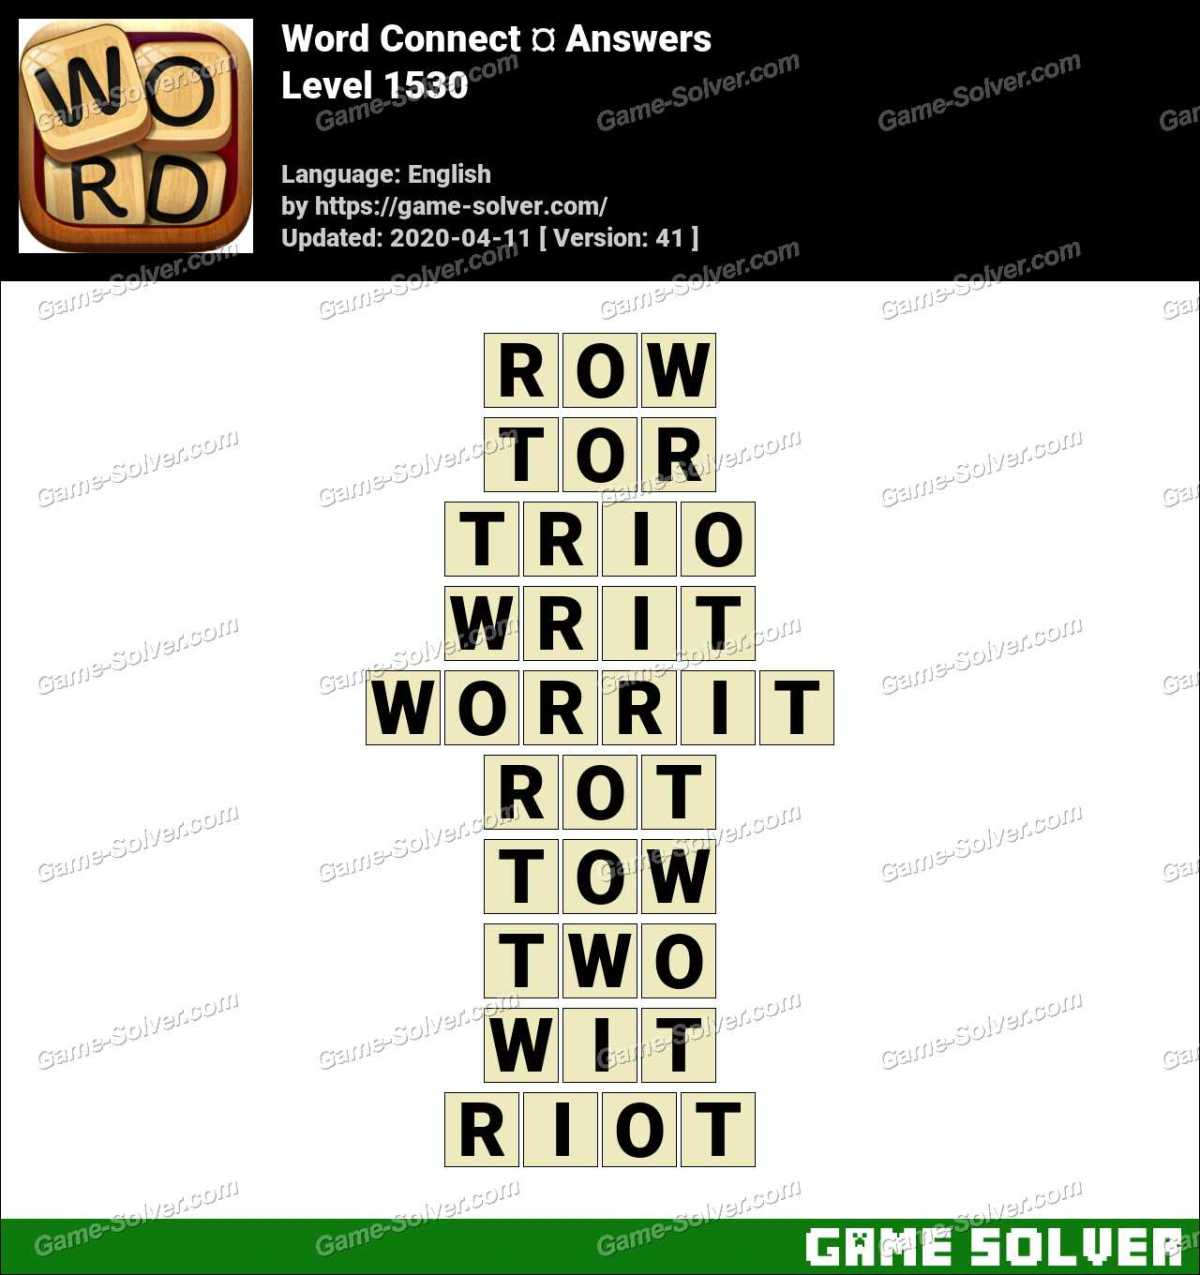 Word Connect Level 1530 Answers